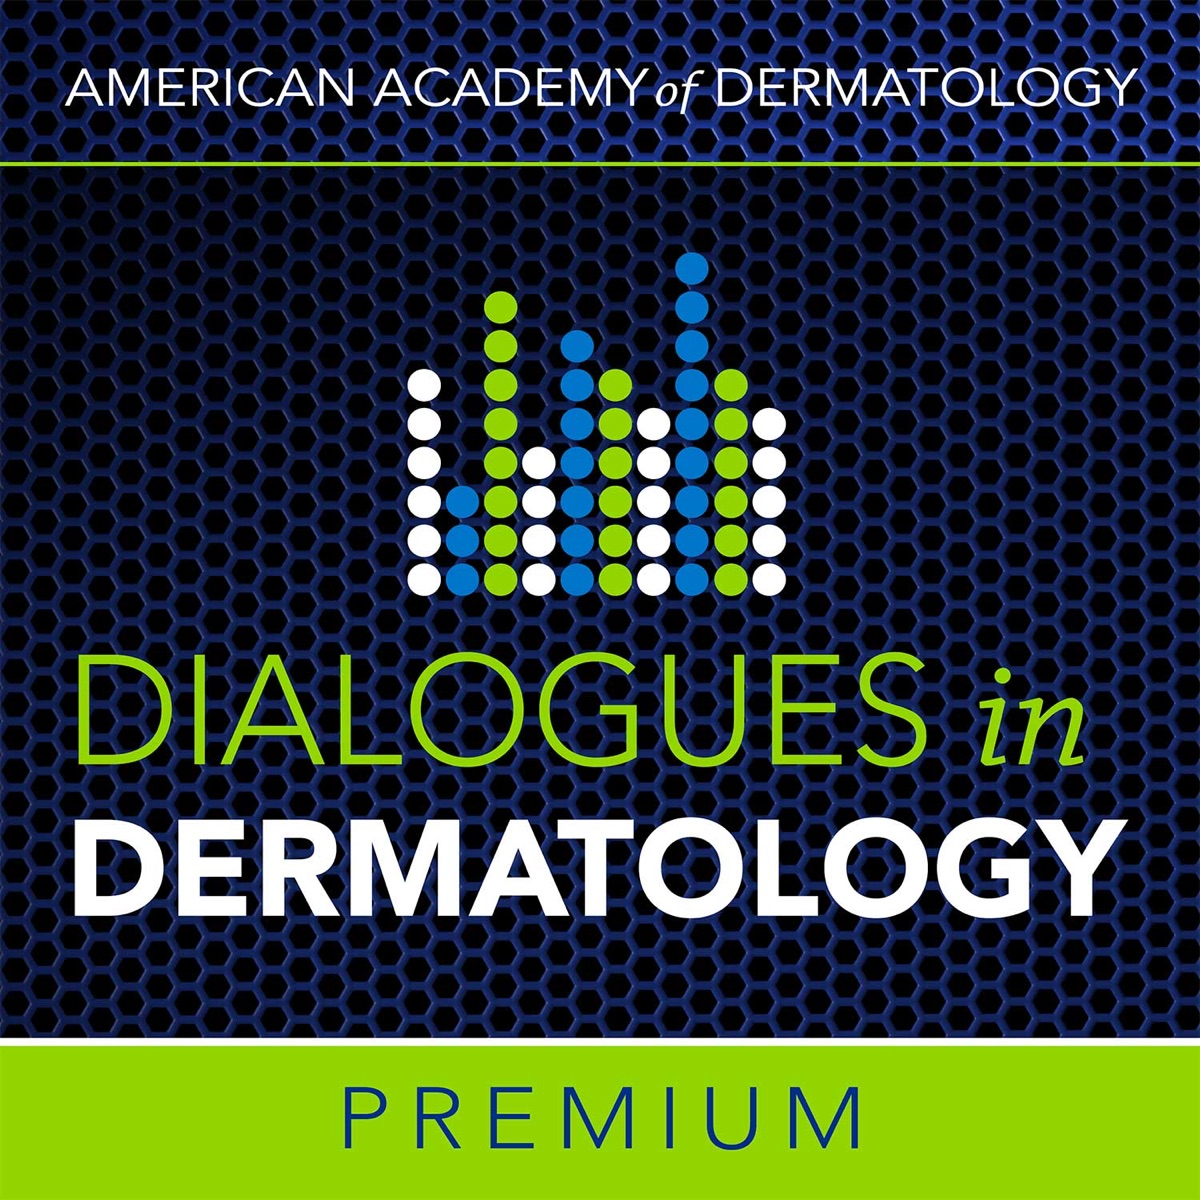 AAD's Dialogues in Dermatology